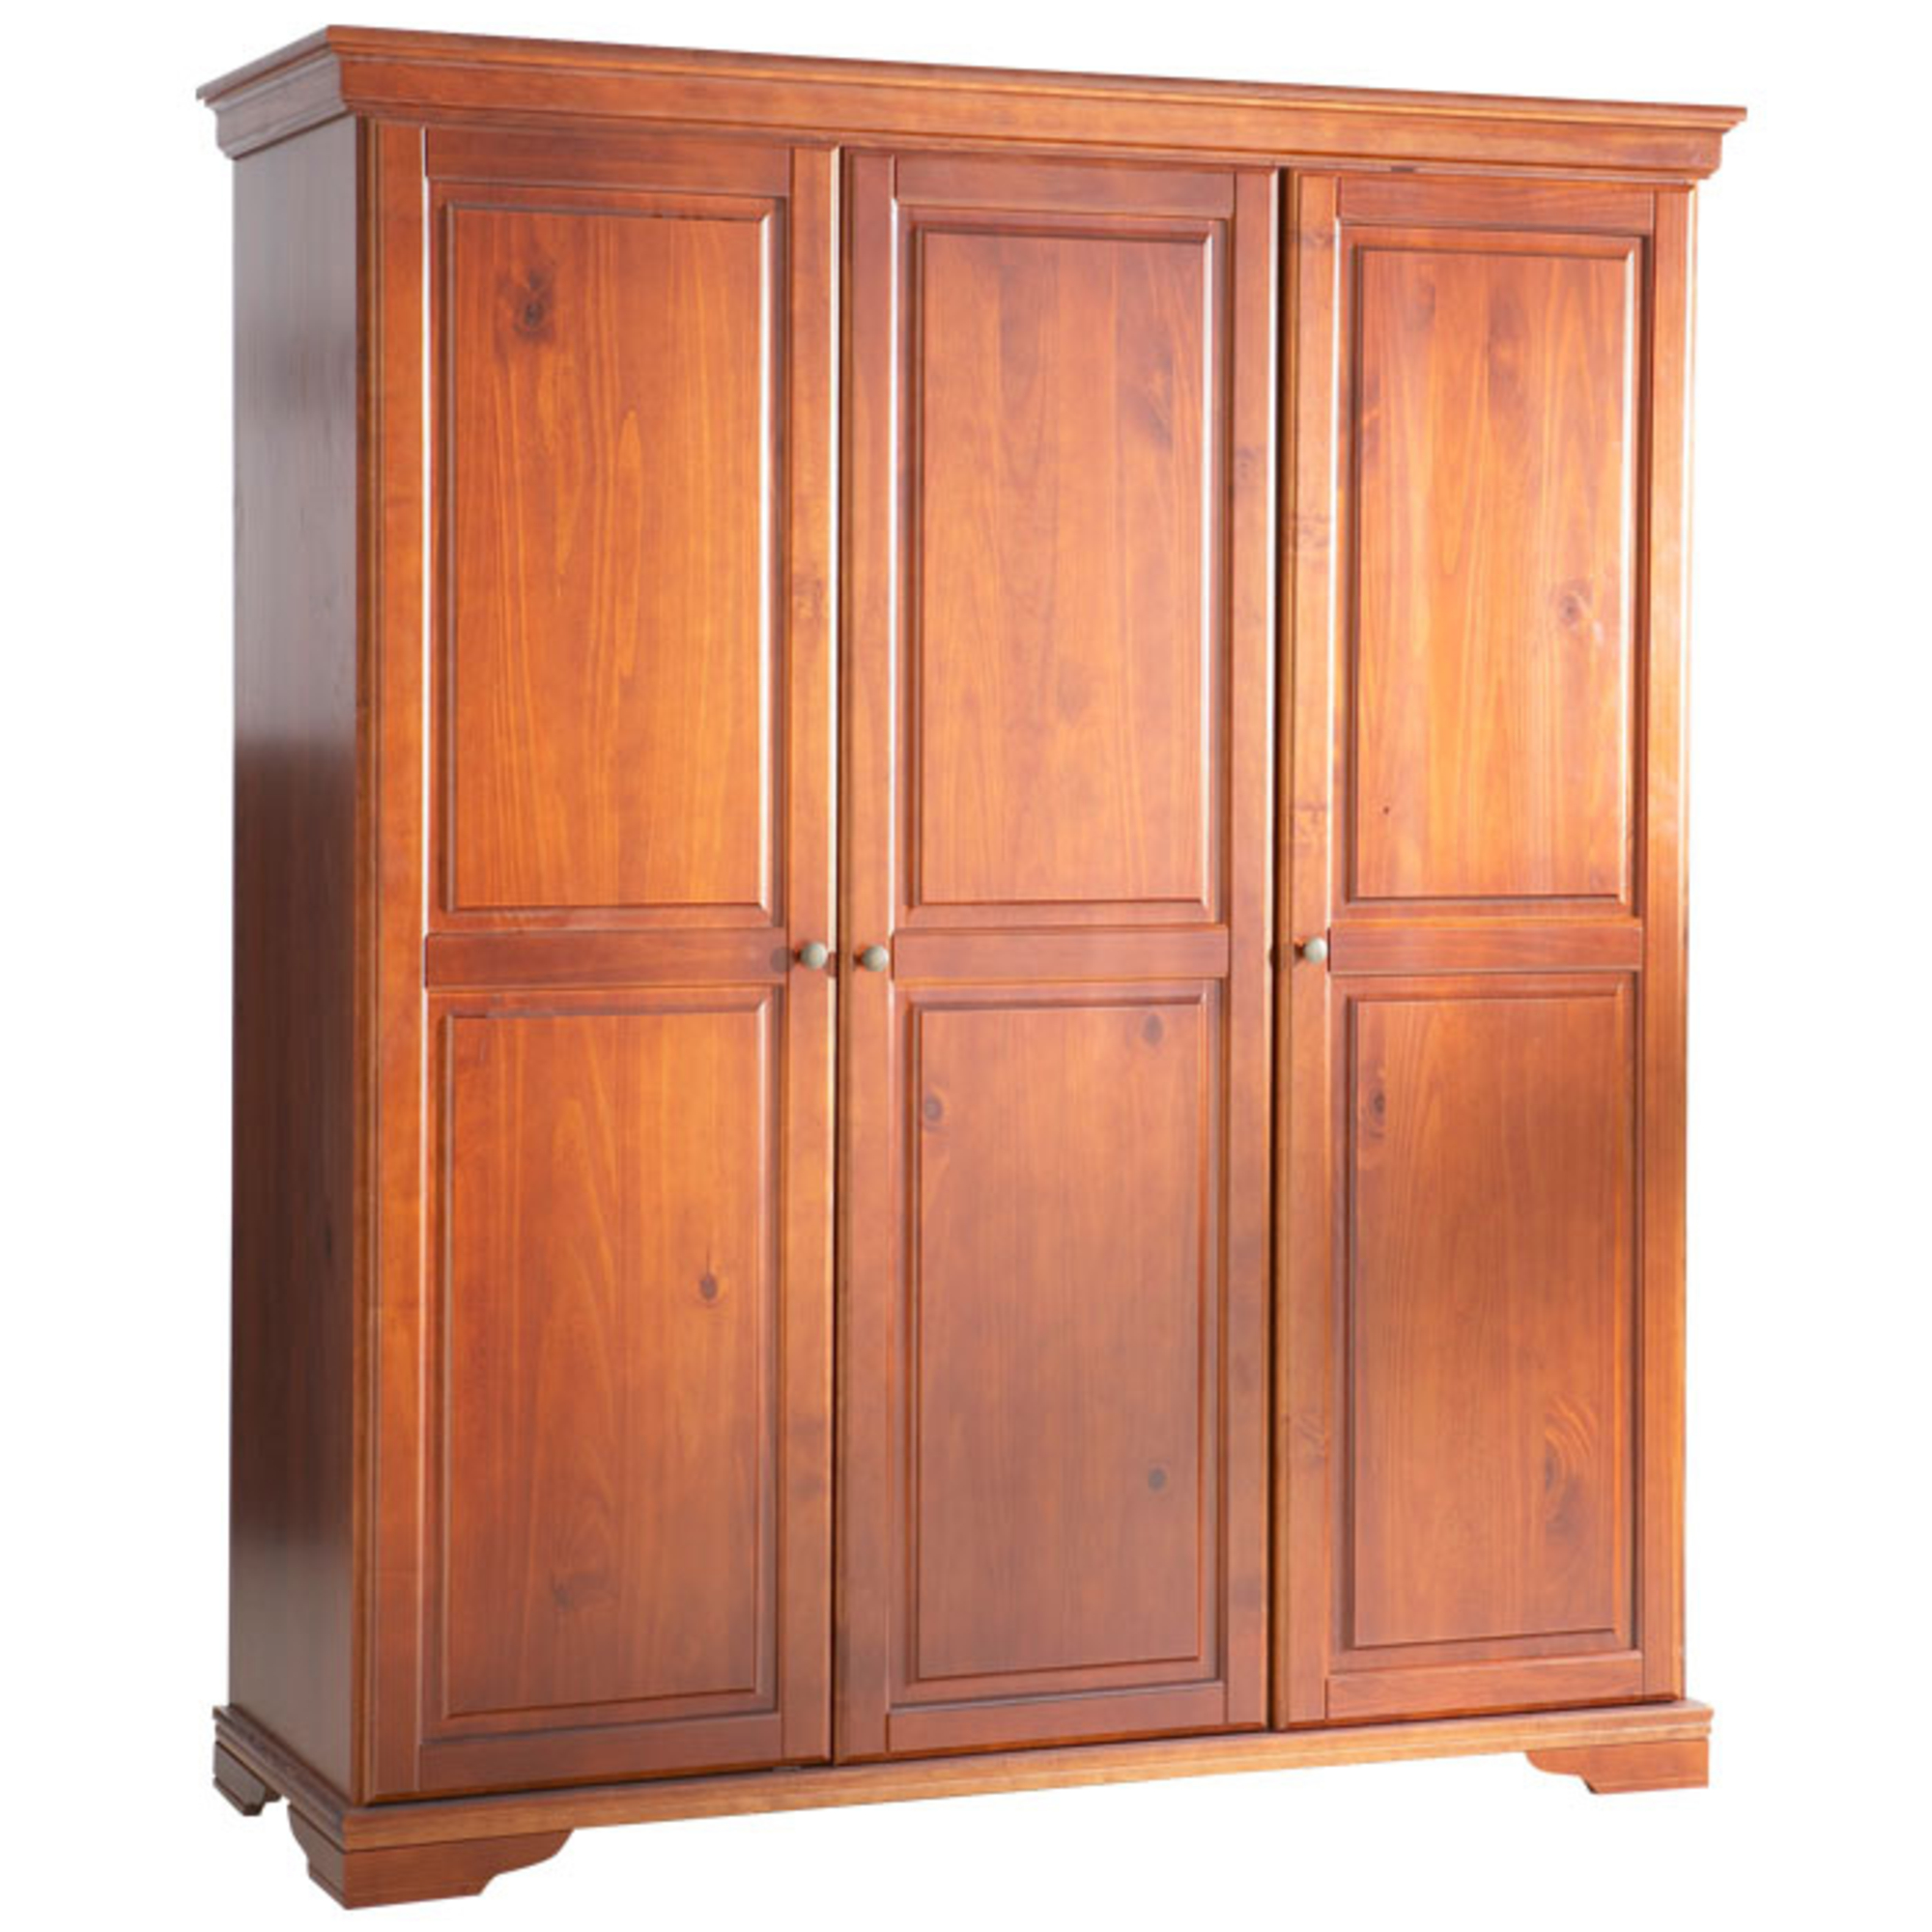 armoire 3 portes style louis philippe merisier. Black Bedroom Furniture Sets. Home Design Ideas